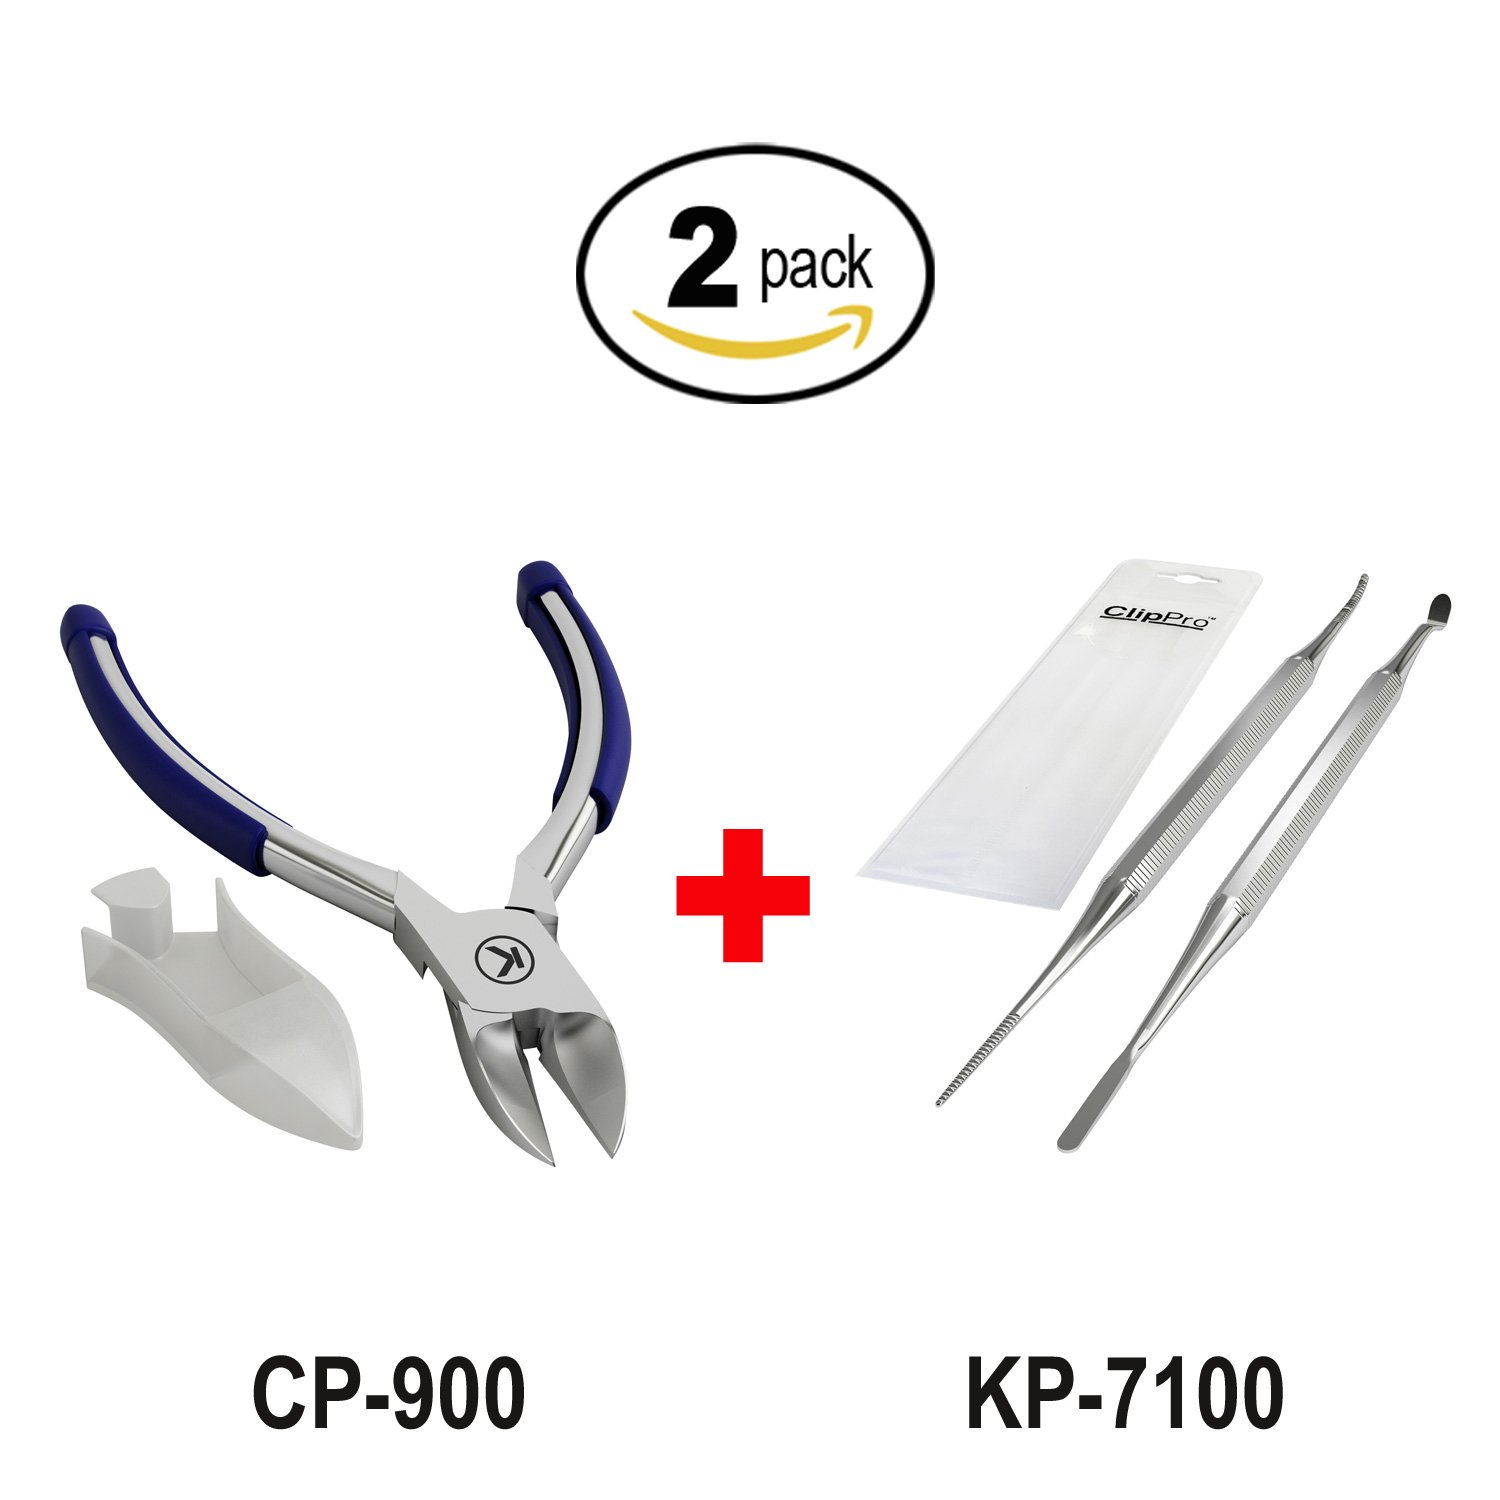 Bundle of 2 Items: Kohm CP-900 Nail Clipper for Thick Nails with Rubber Handle and KP-7100 Ingrown Toenail File & Lifter (2 Pack)